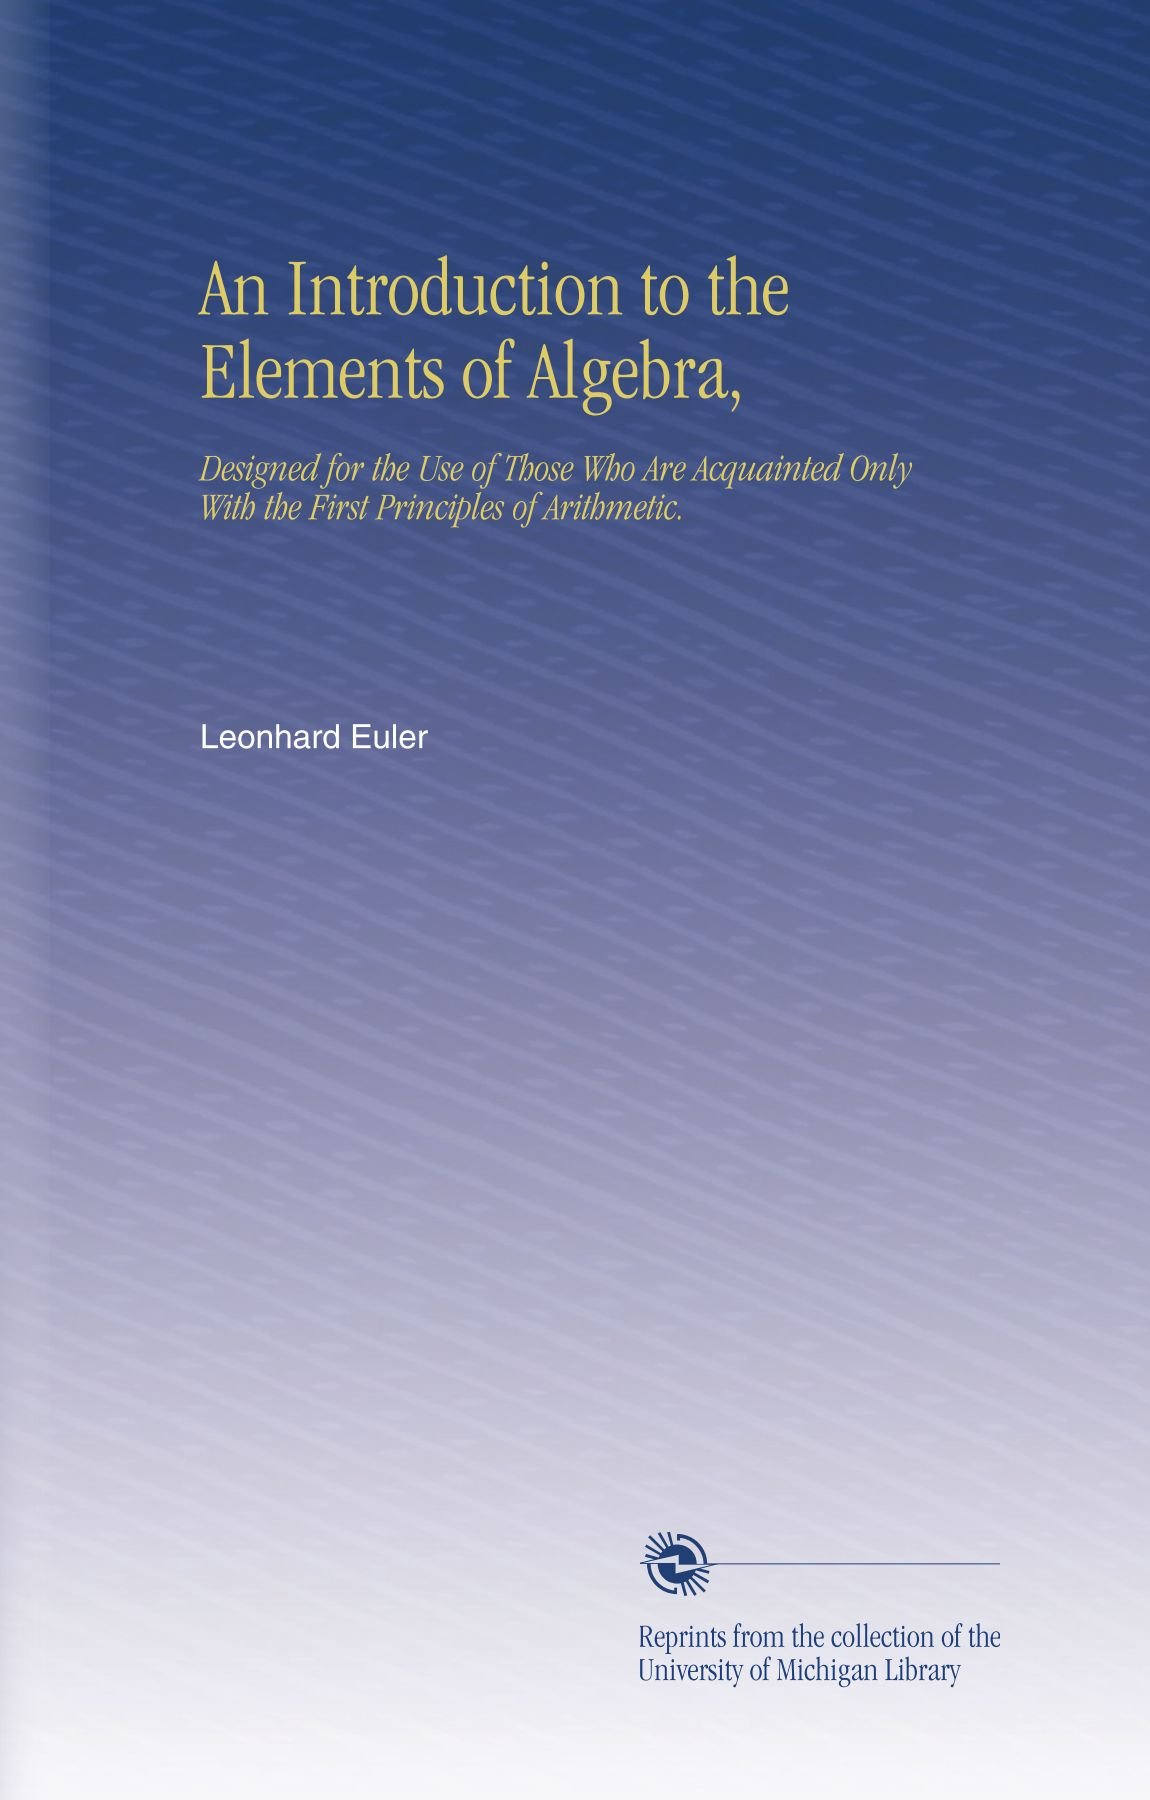 Download An Introduction to the Elements of Algebra,: Designed for the Use of Those Who Are Acquainted Only With the First Principles of Arithmetic. pdf